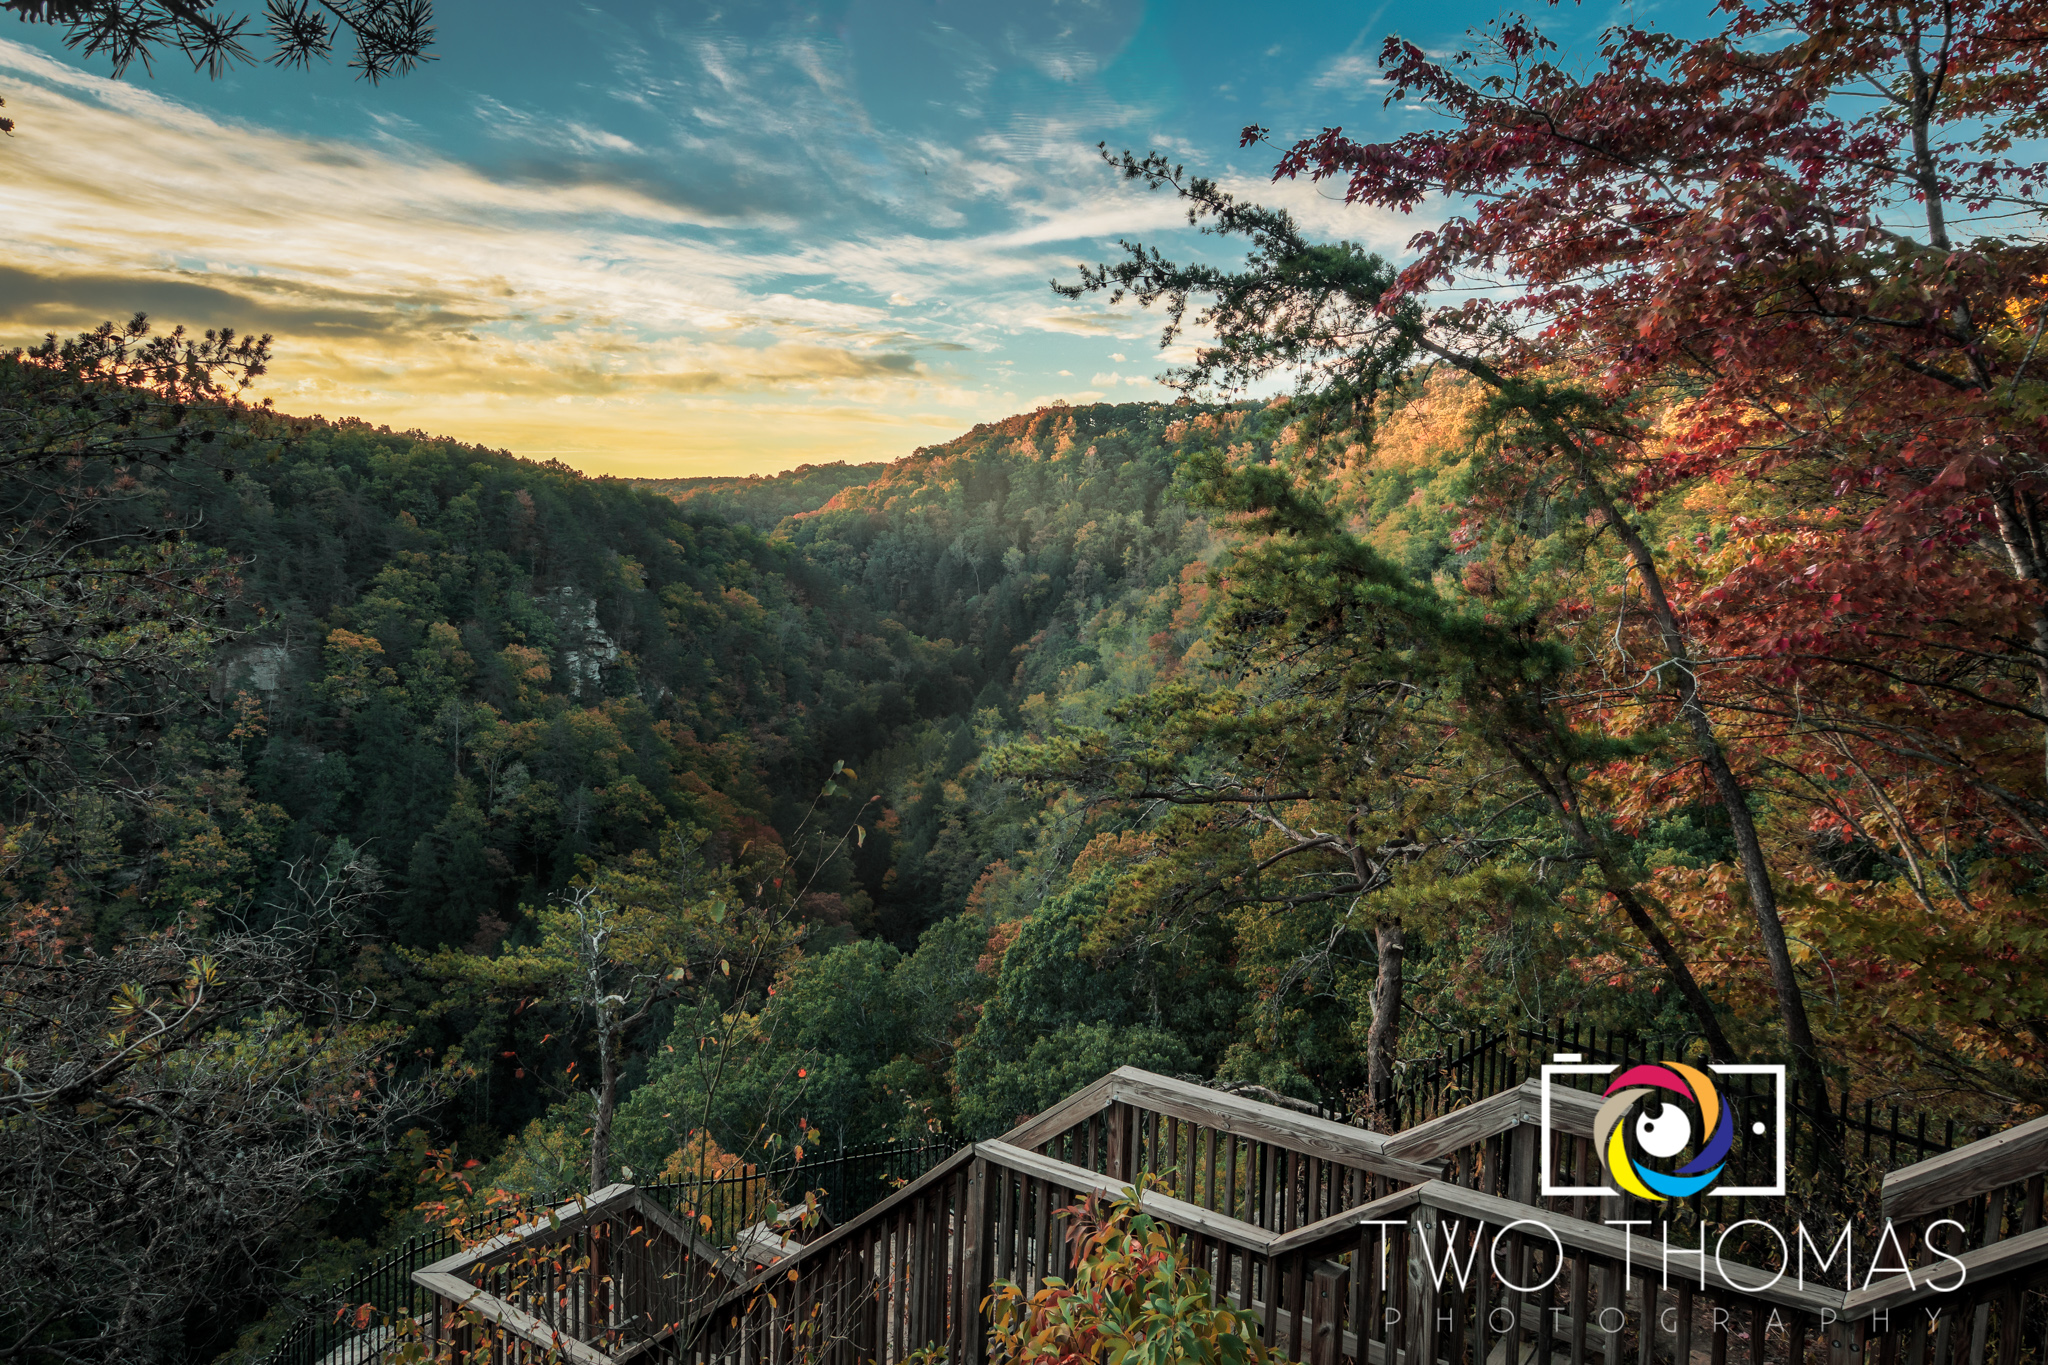 Early autumn sunrise at Cloudland Canyon State Park in Rising Fawn, GA.